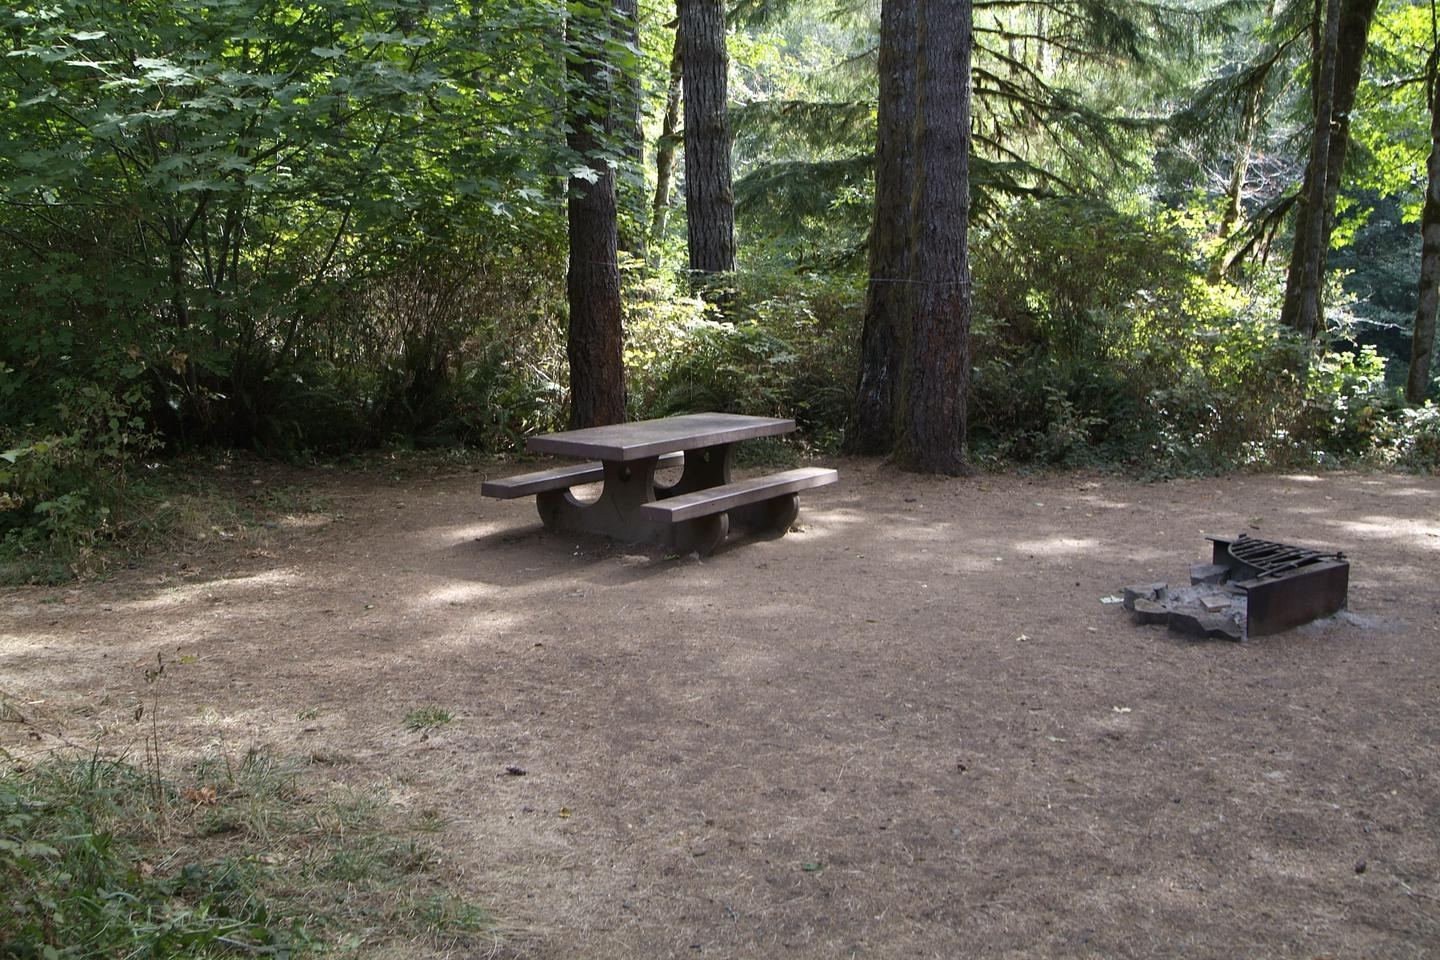 Table and fire ring for camp site 8. Camp site 8 table and fire ring.